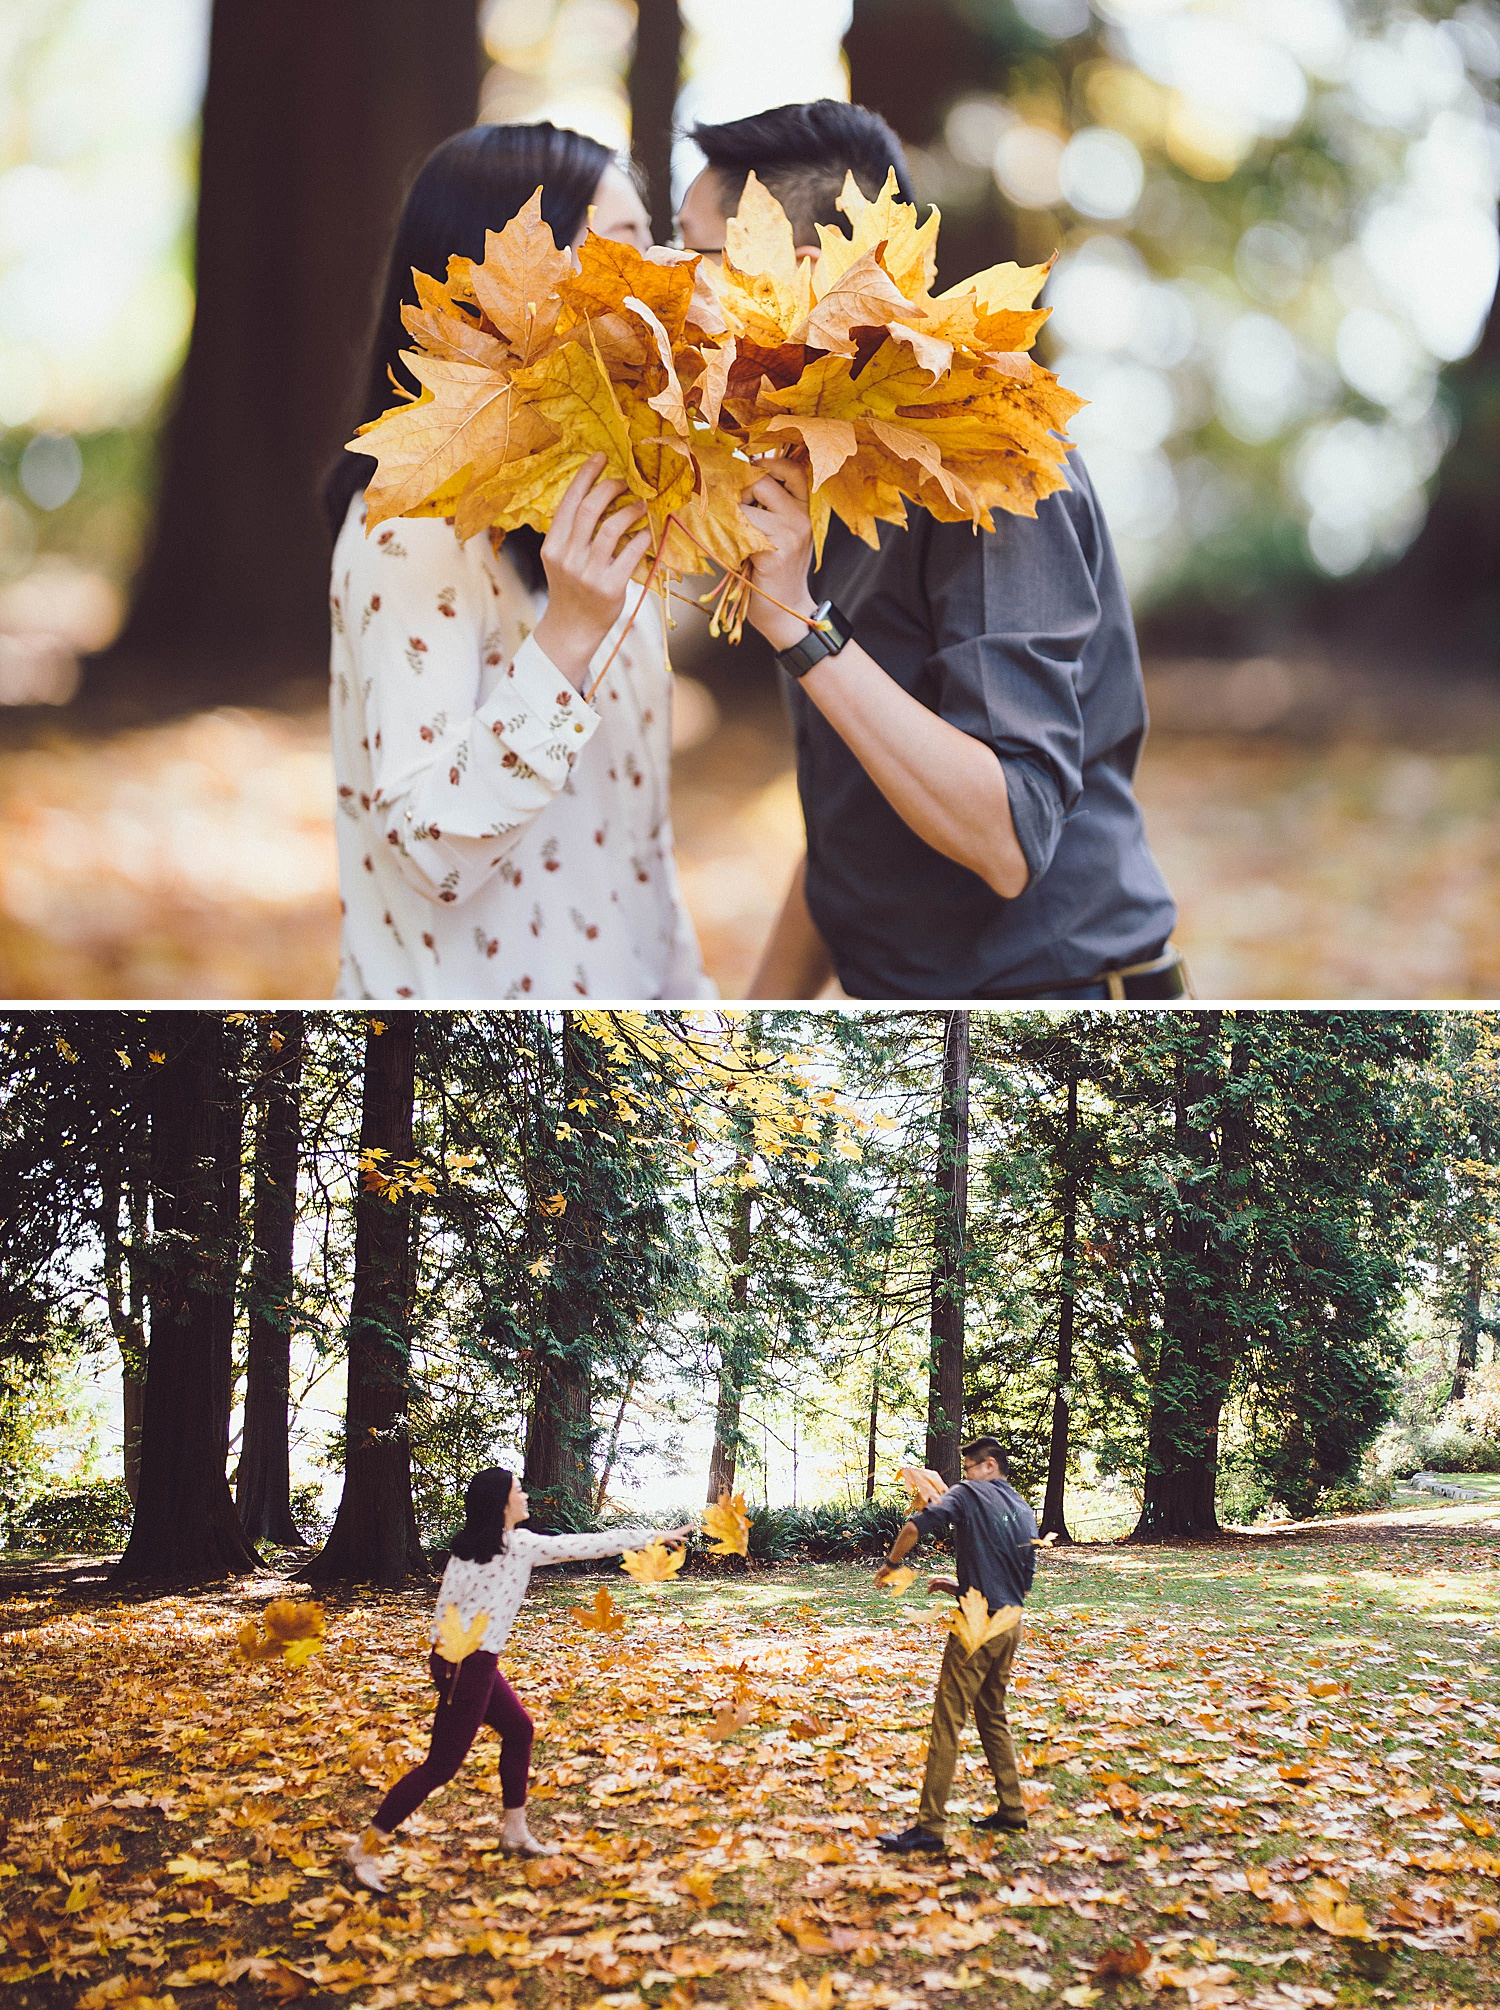 Joan and Mike pick up a handful of fall leaves to throw at each other